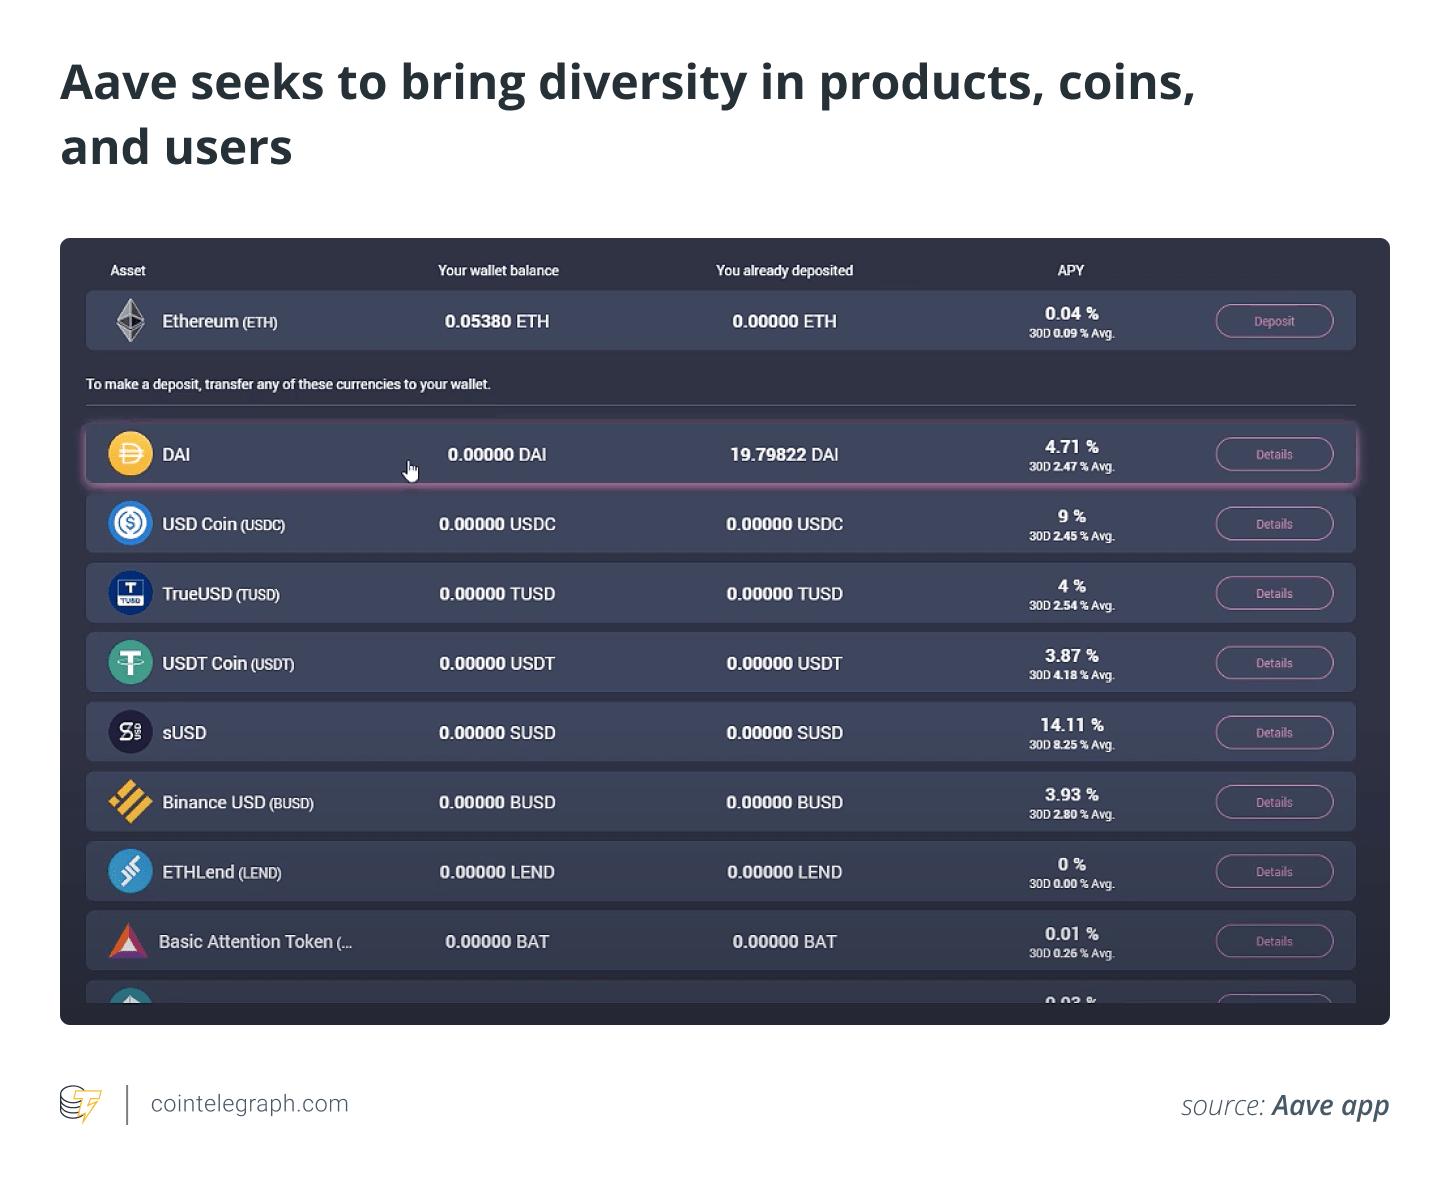 Aave seeks to bring diversity in products, coins, and users